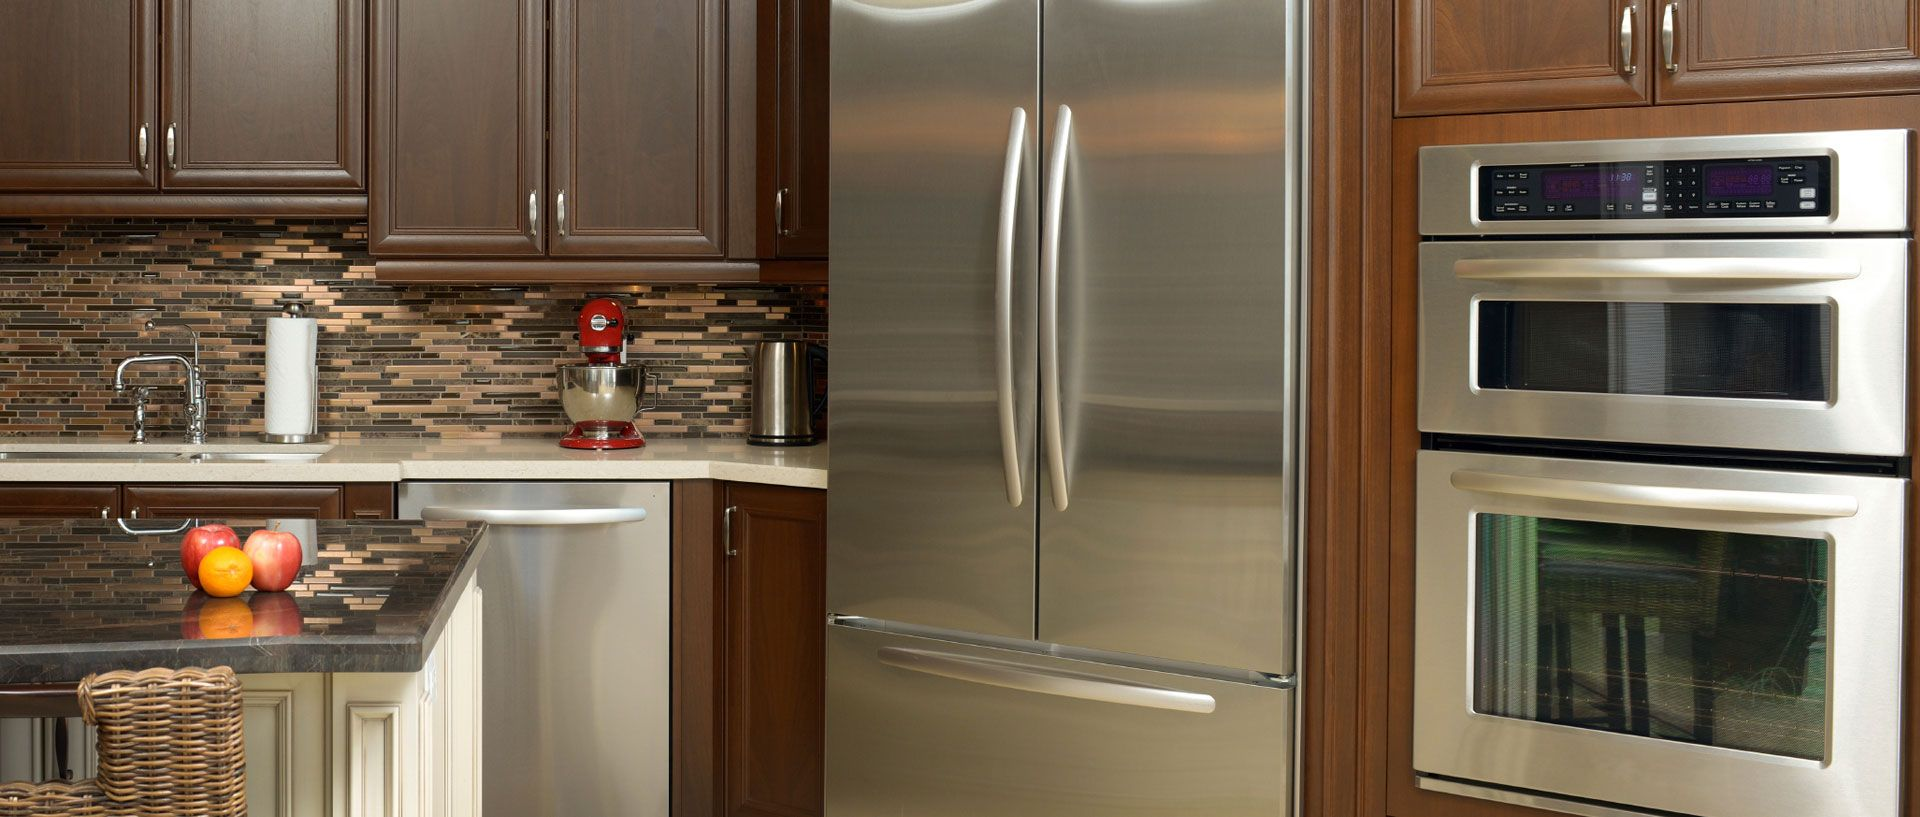 Best French Door Refrigerators From Consumer Reports